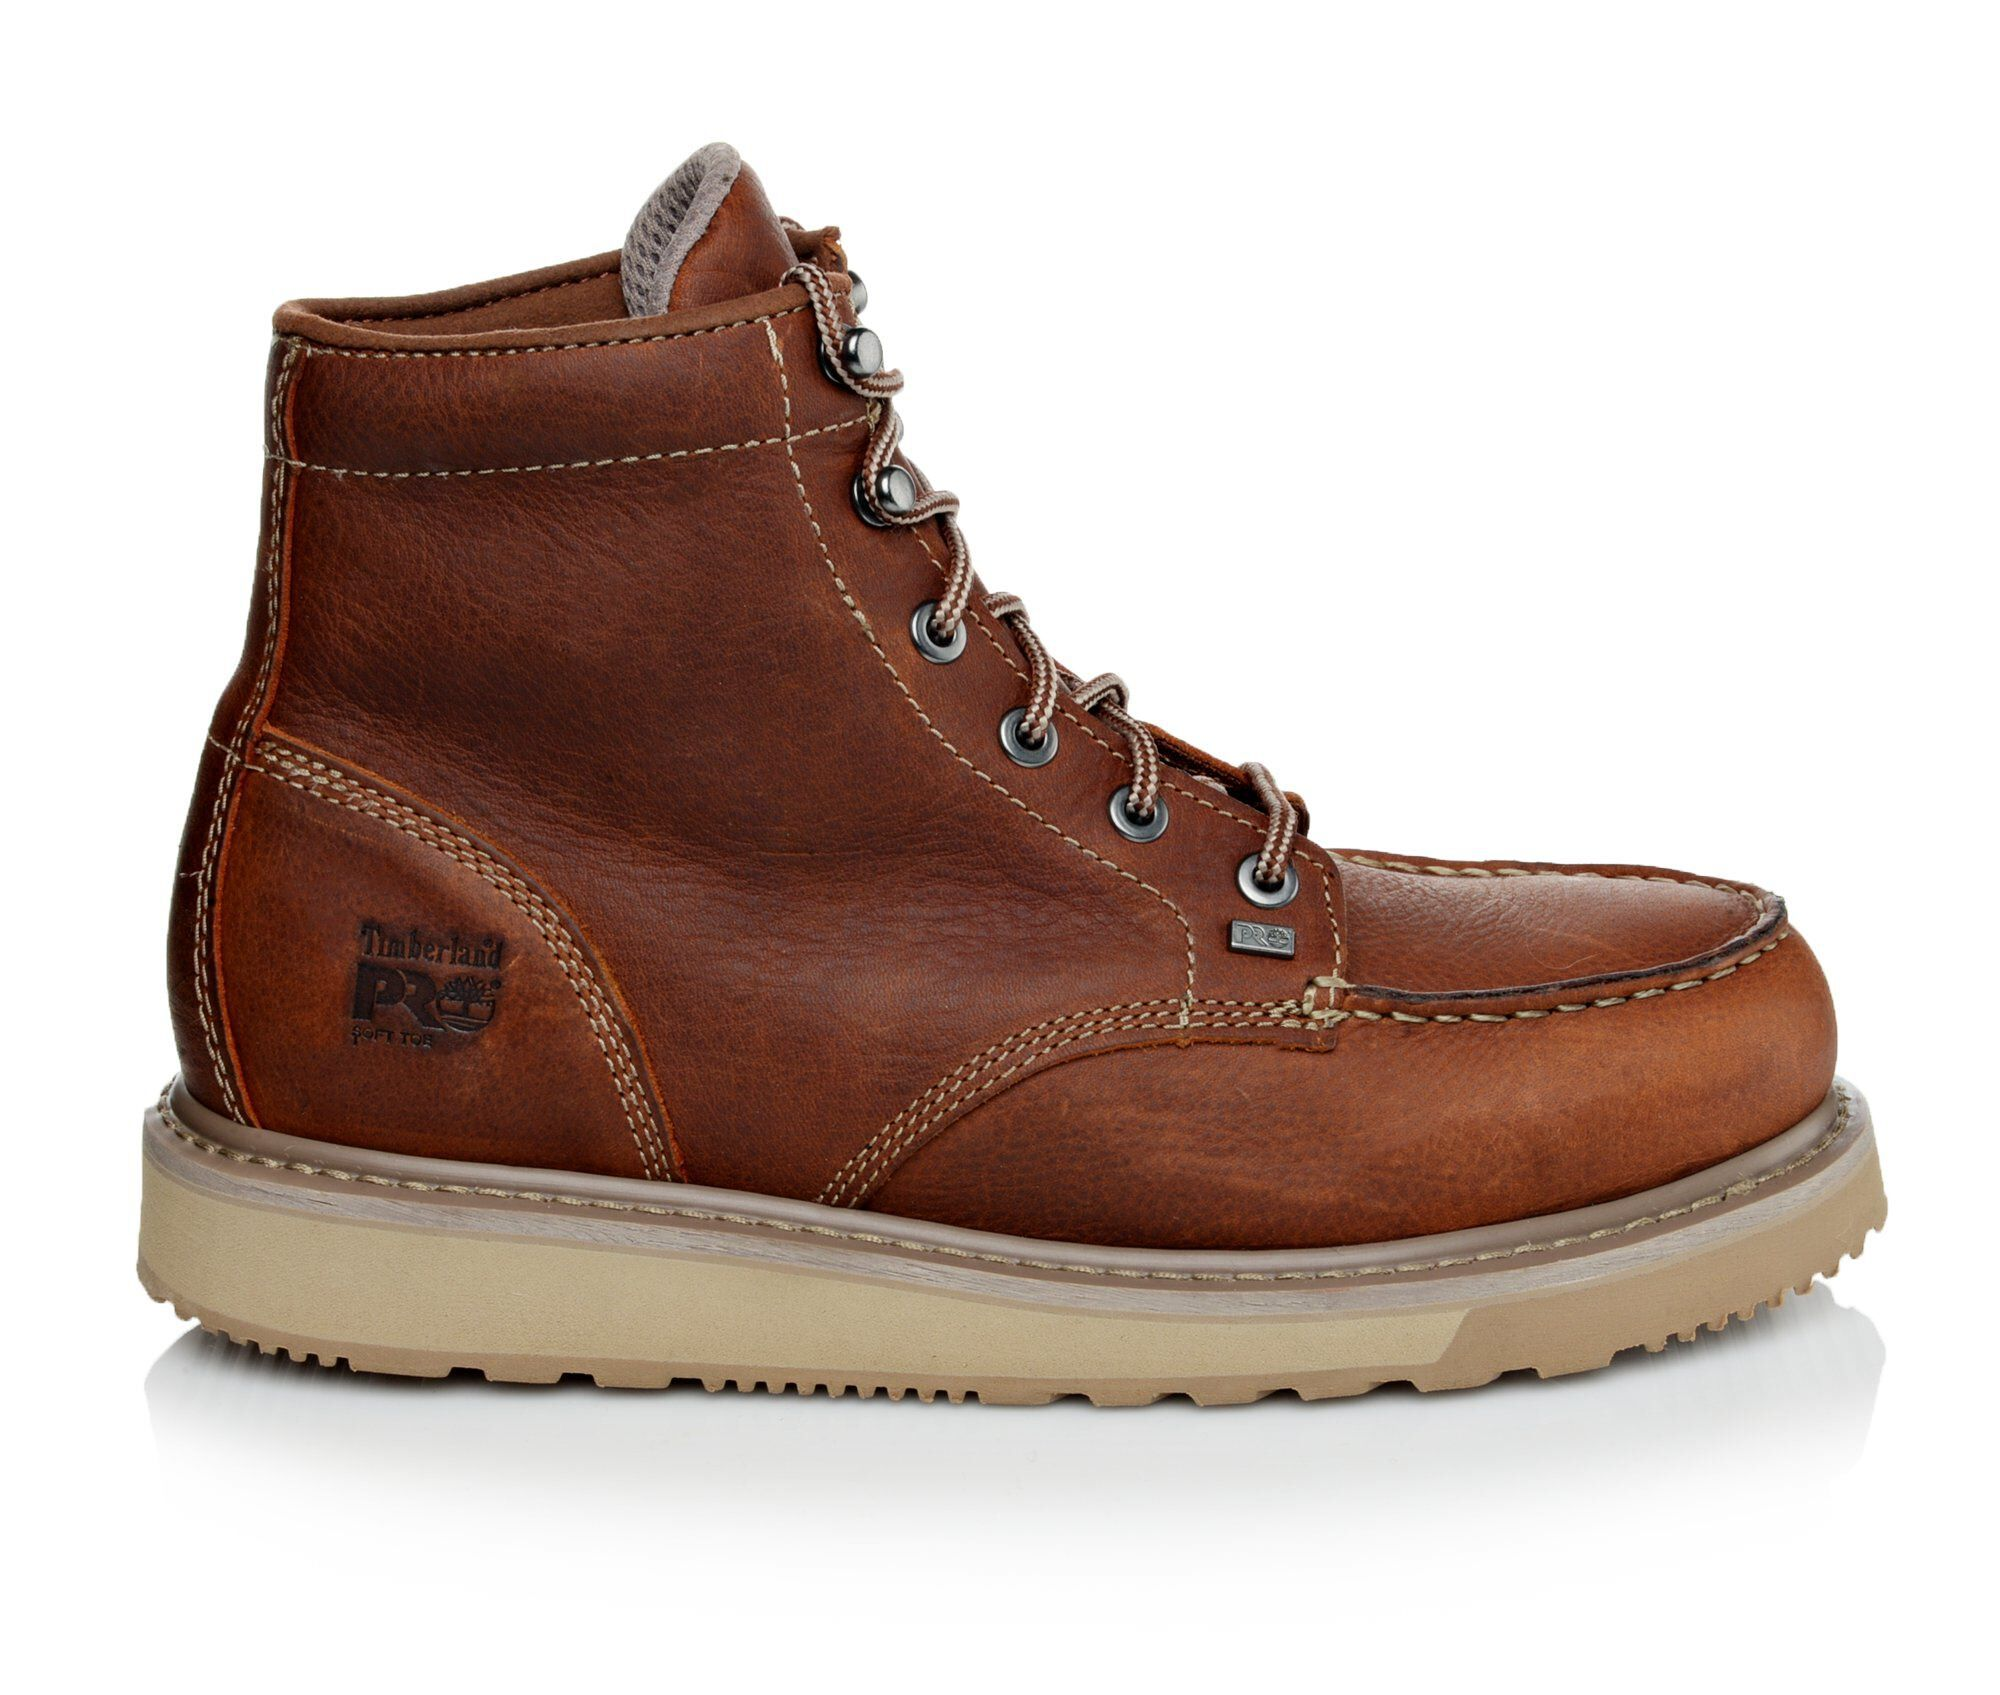 Men's Timberland Pro Barstow Wedge Electrical Hazard Boots Brown